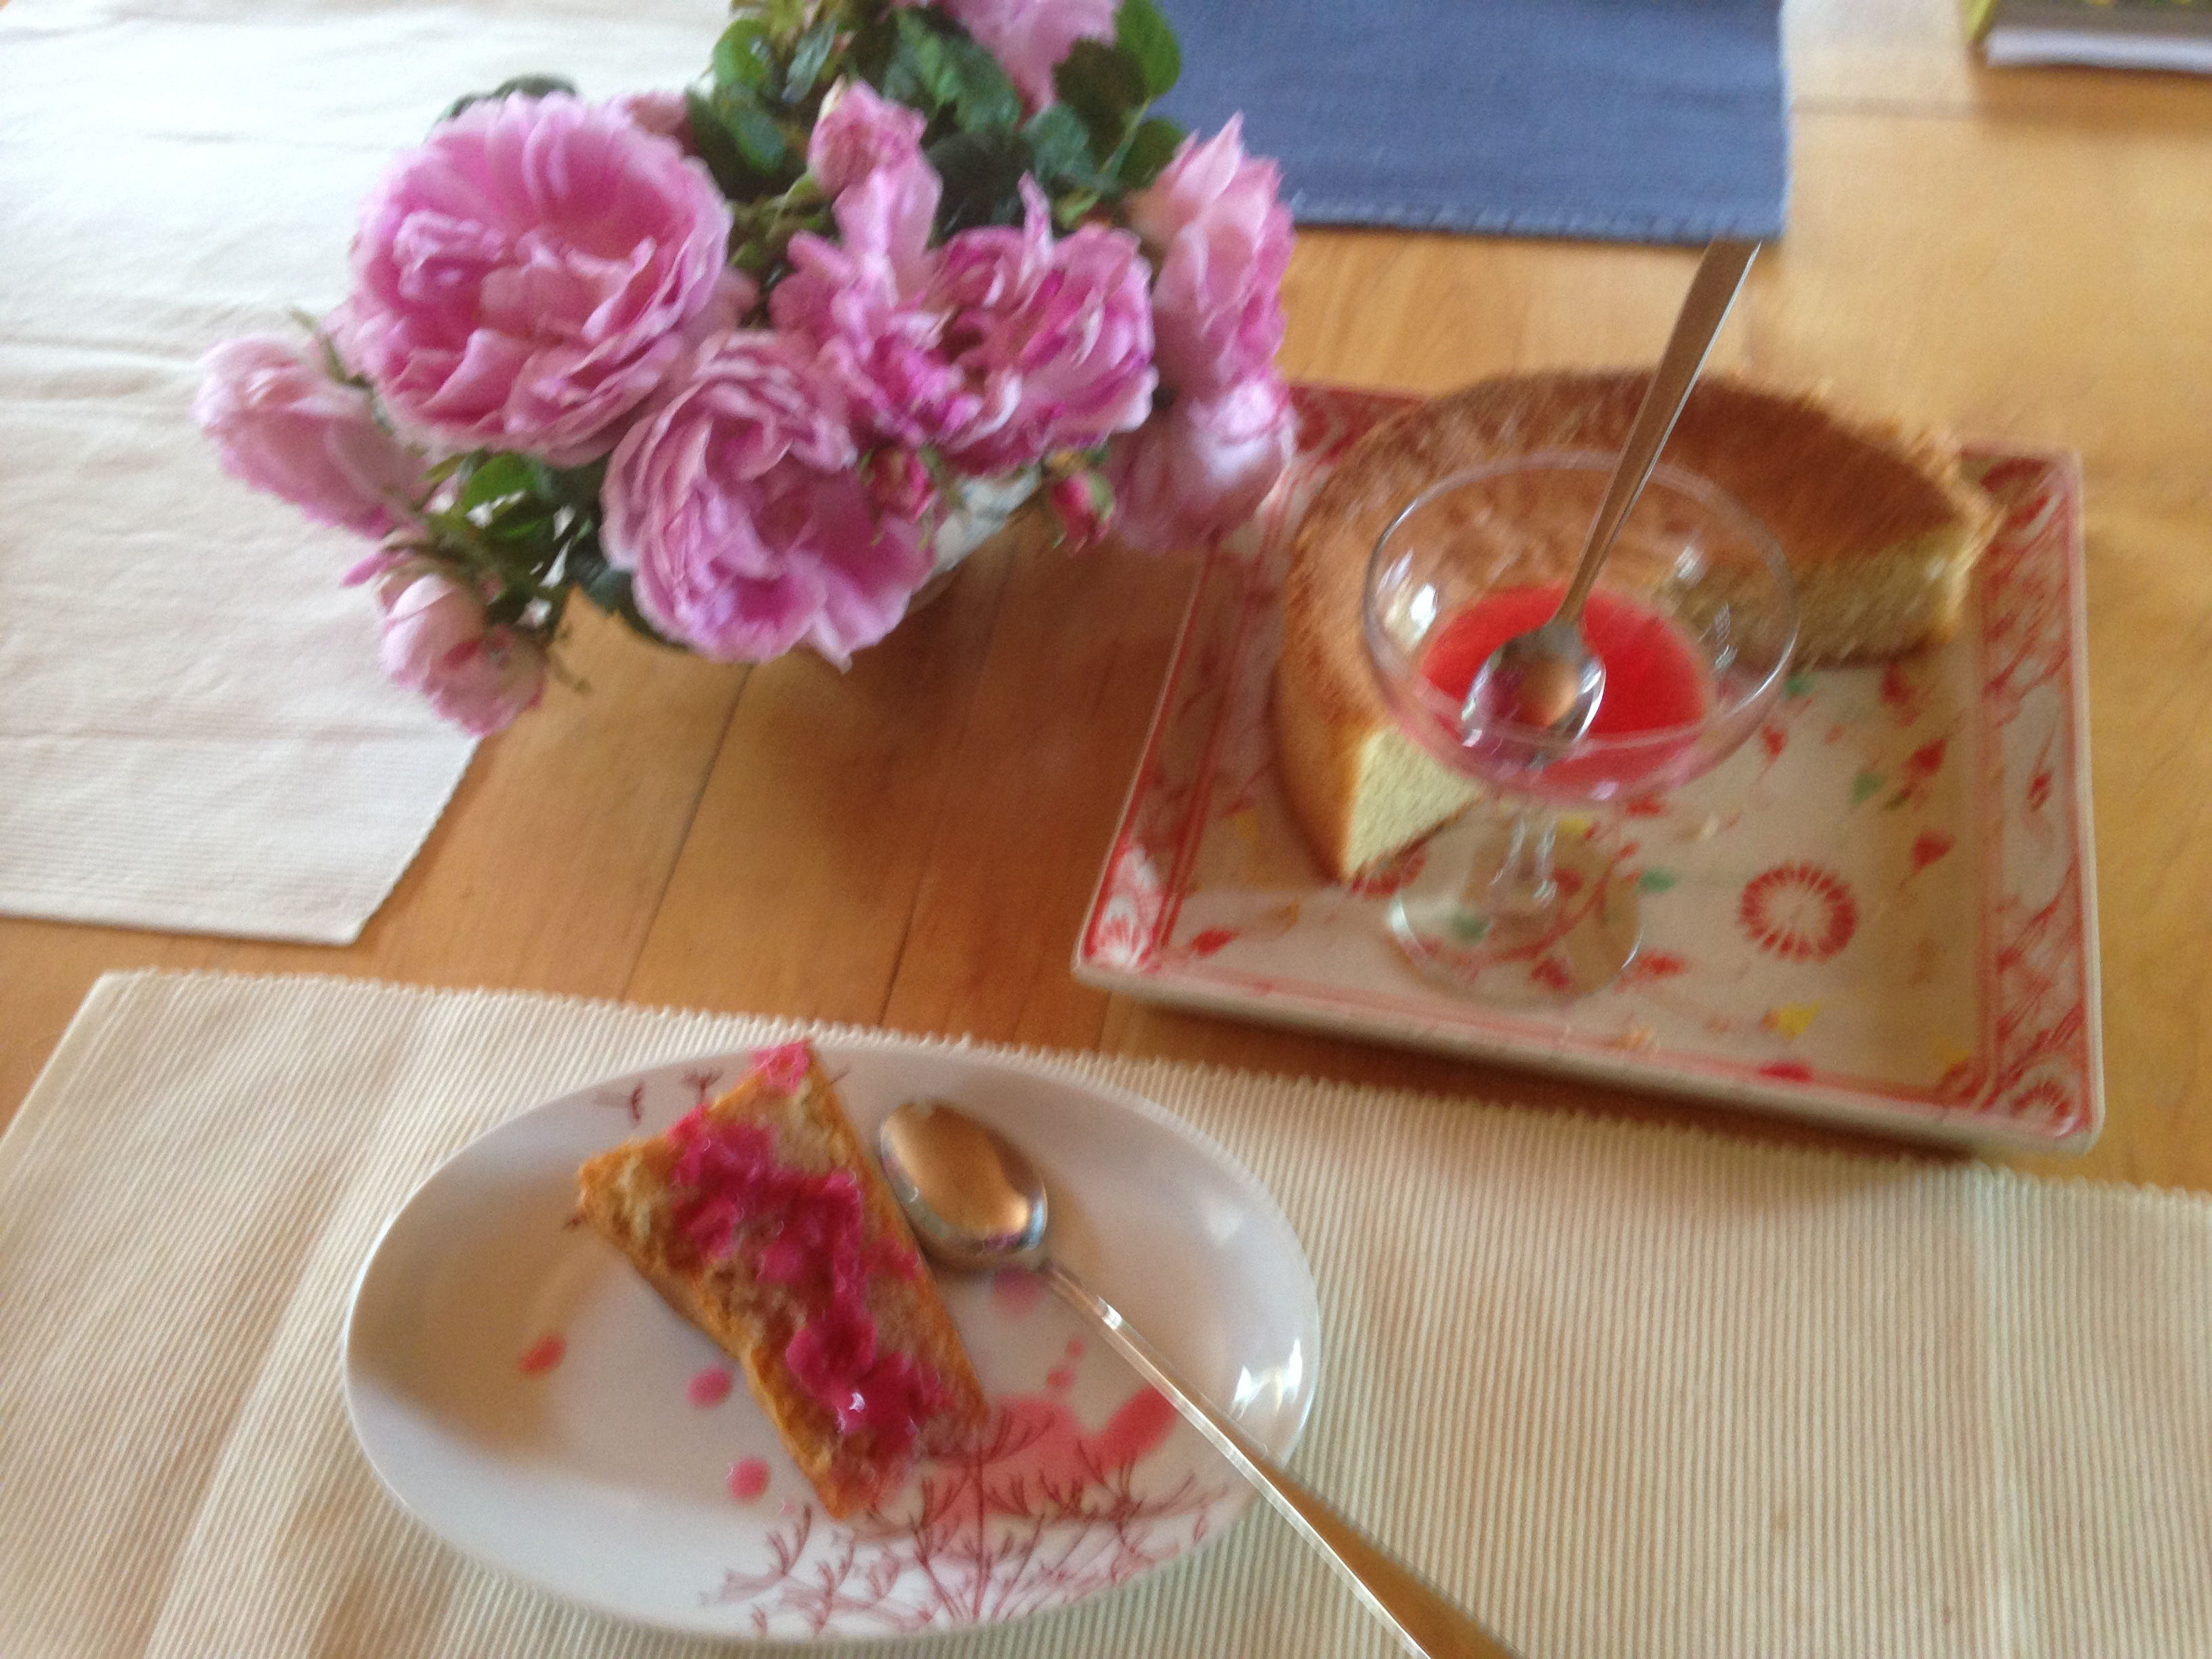 rose cake and jelly